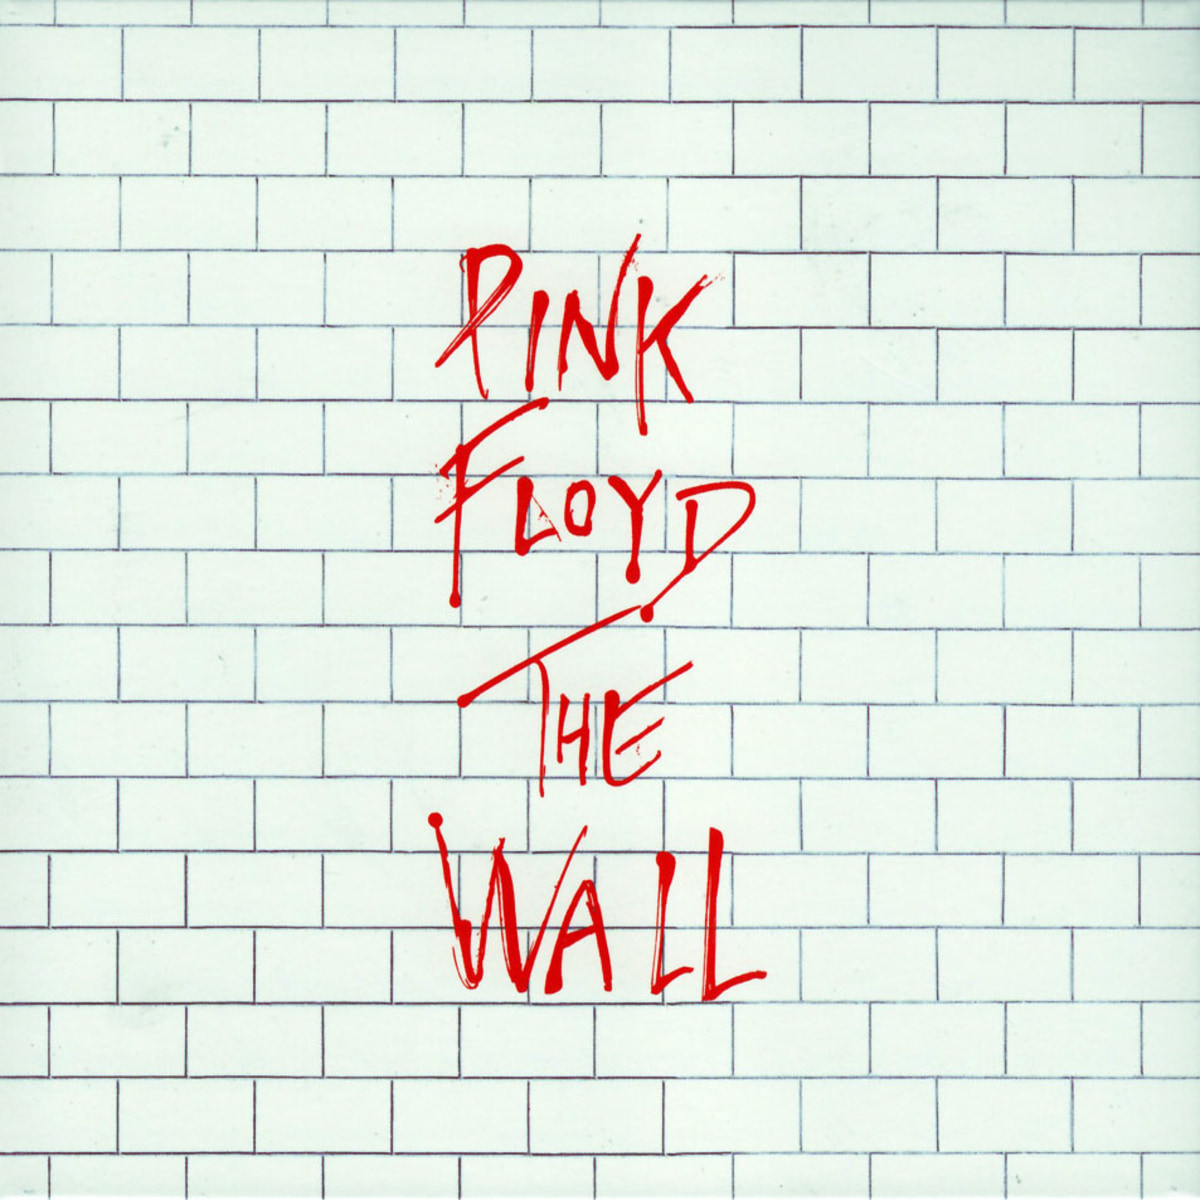 pink floyd album cover designer dies at 69